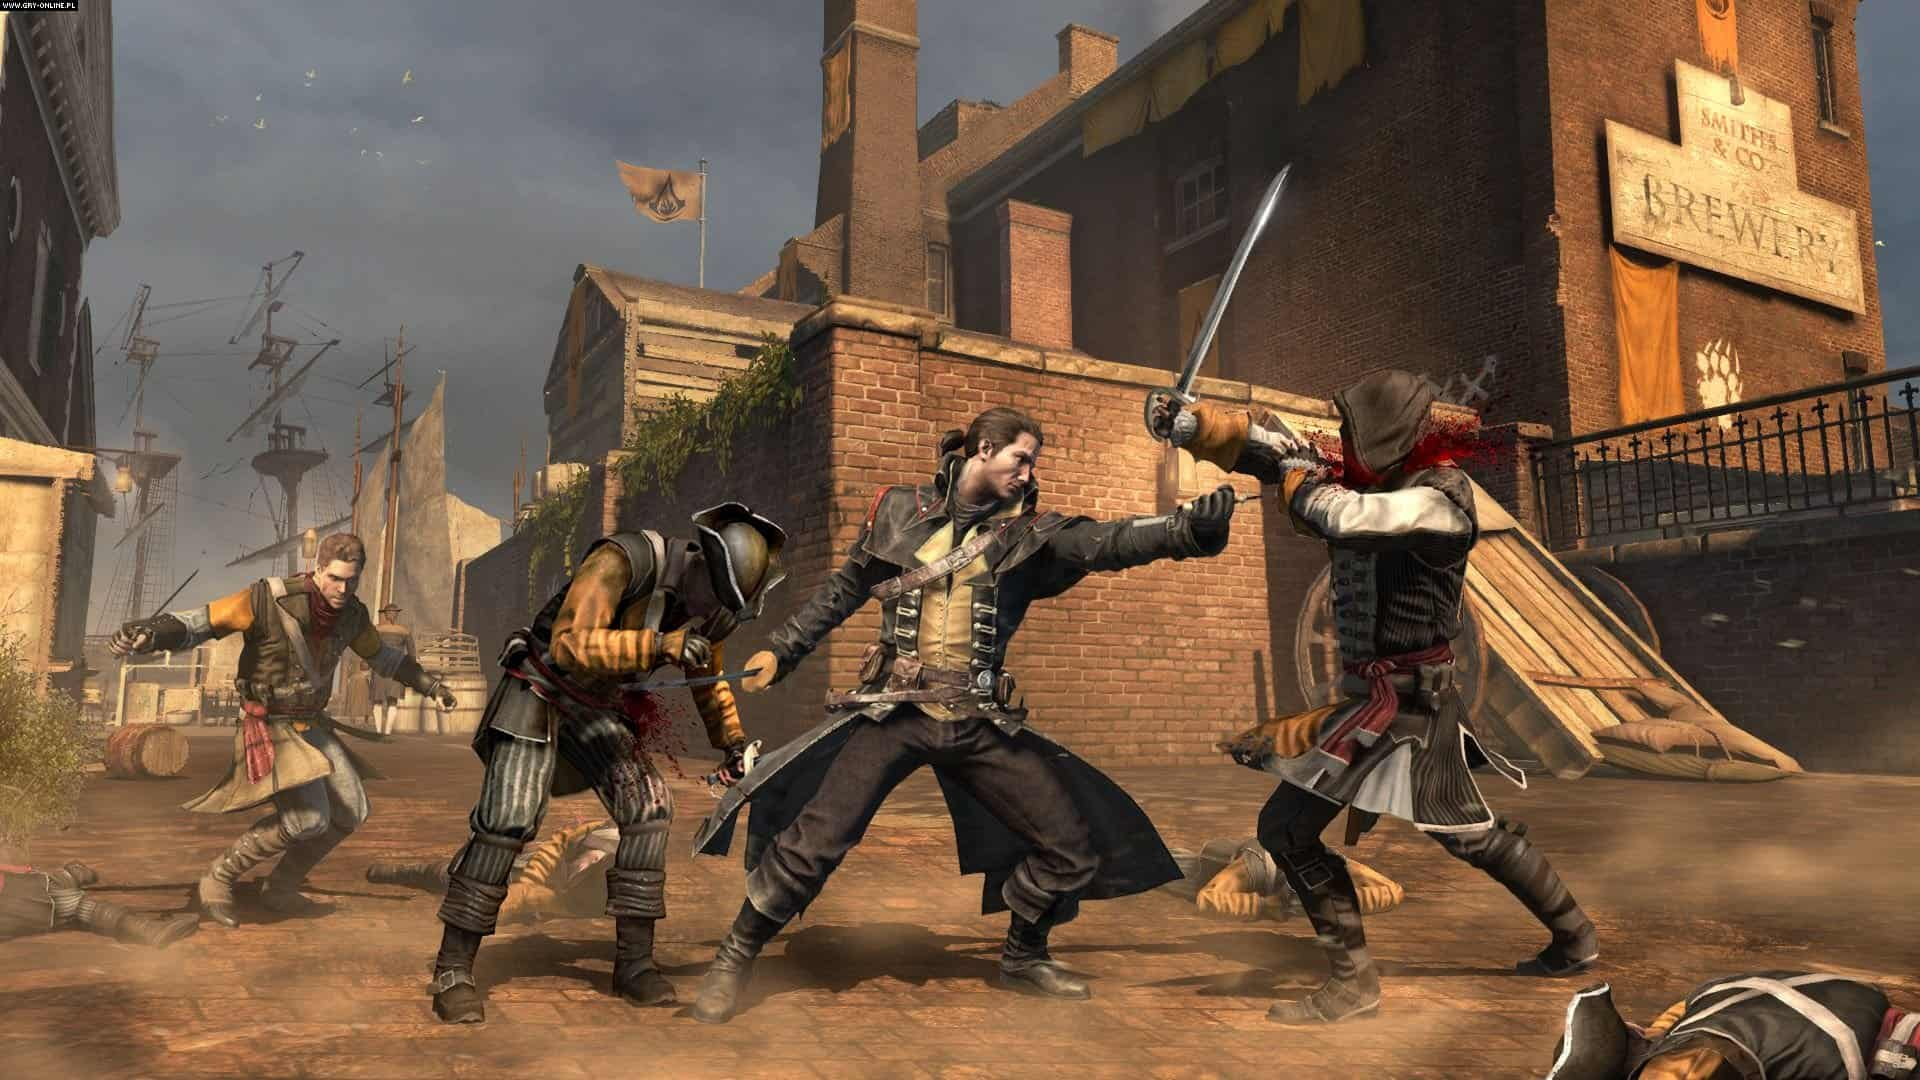 Download Assassin's Creed Rogue free